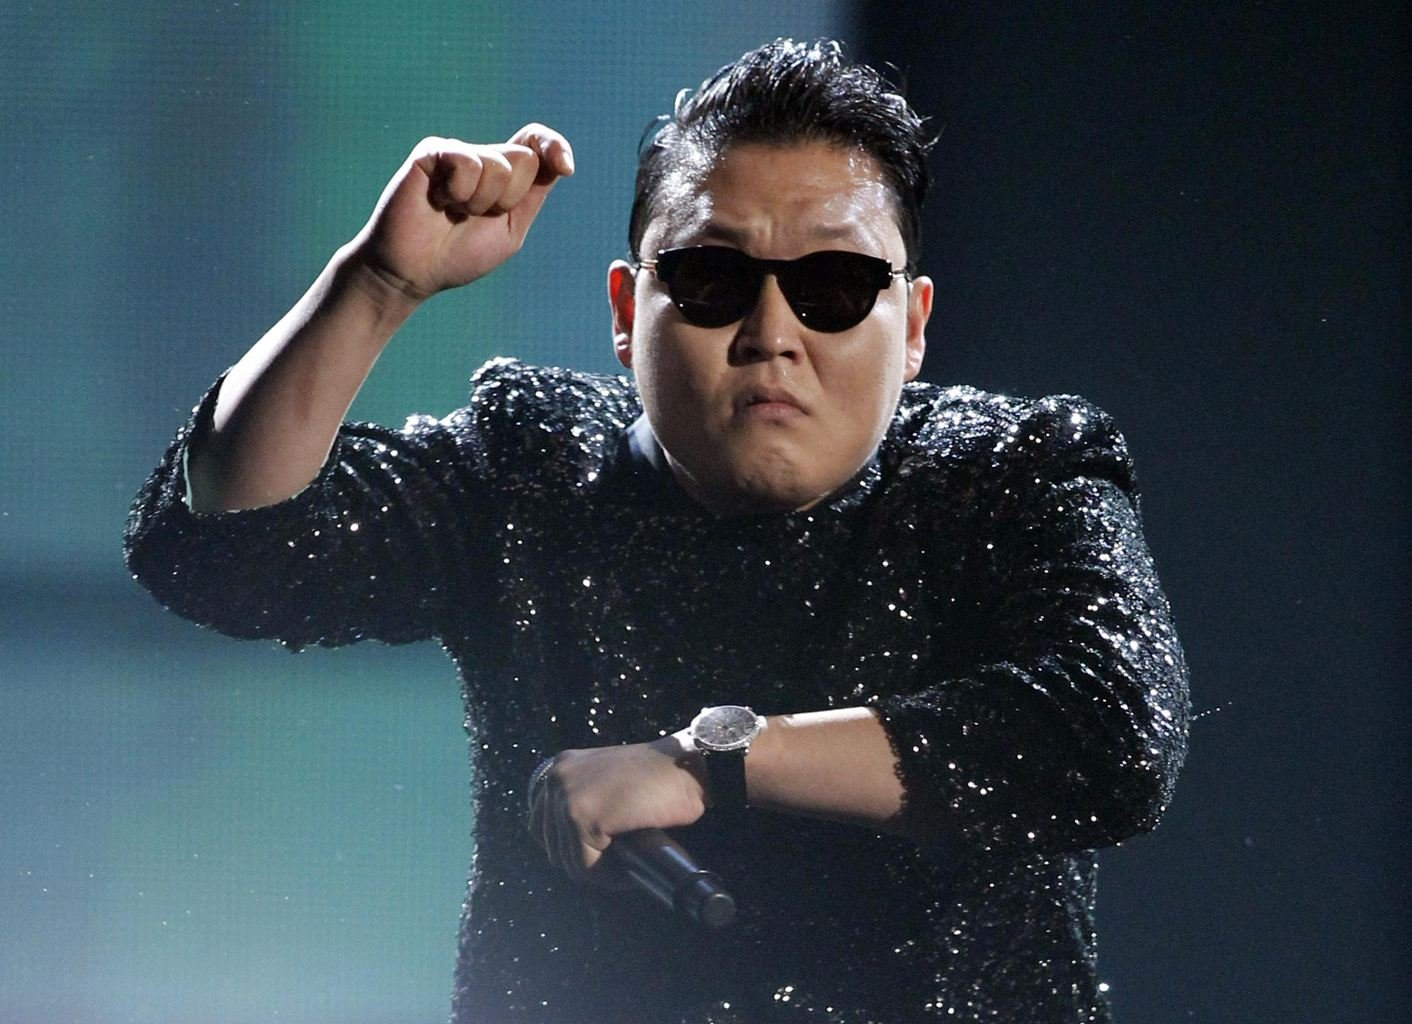 PSY Is Now in Britannica Encyclopedia